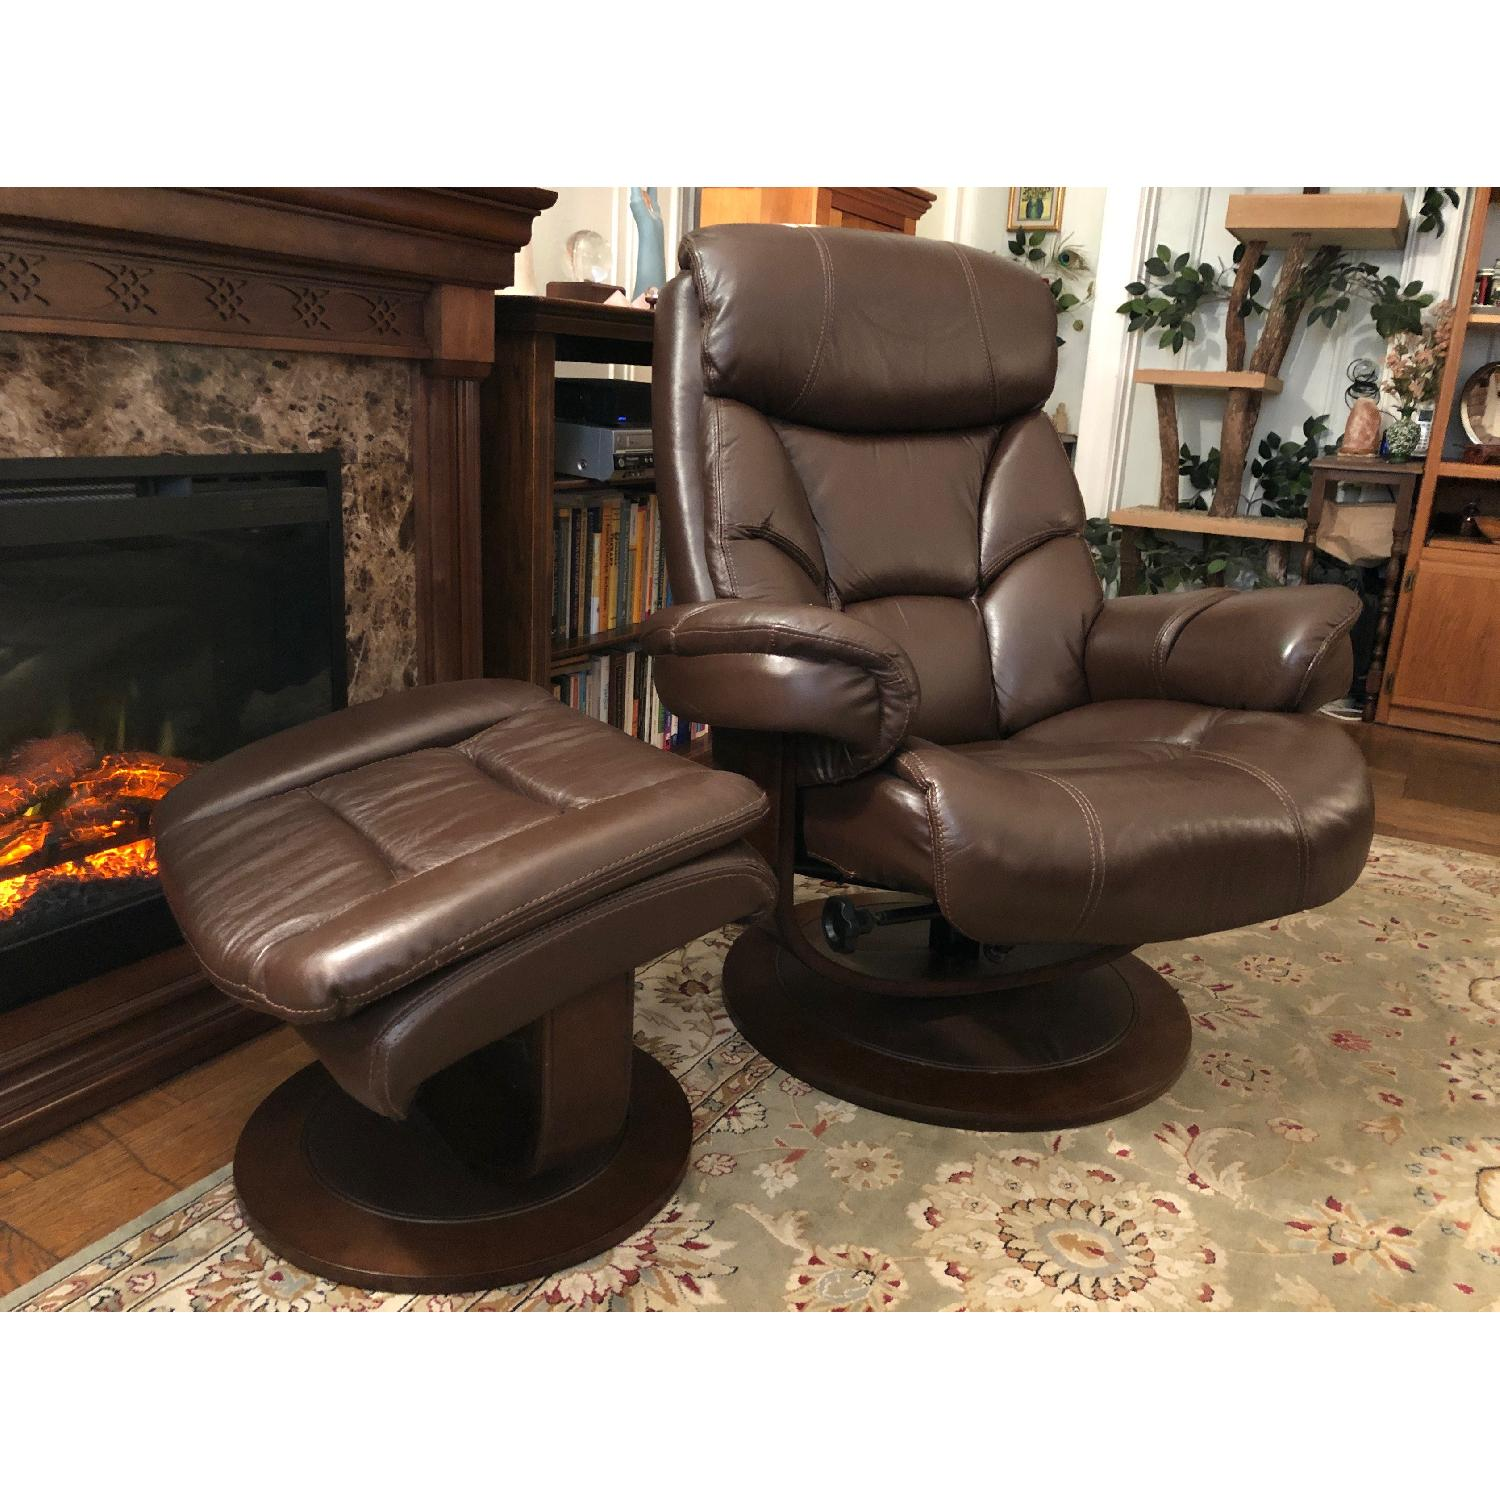 Macy's Leather Euro Chair & Ottoman - image-2